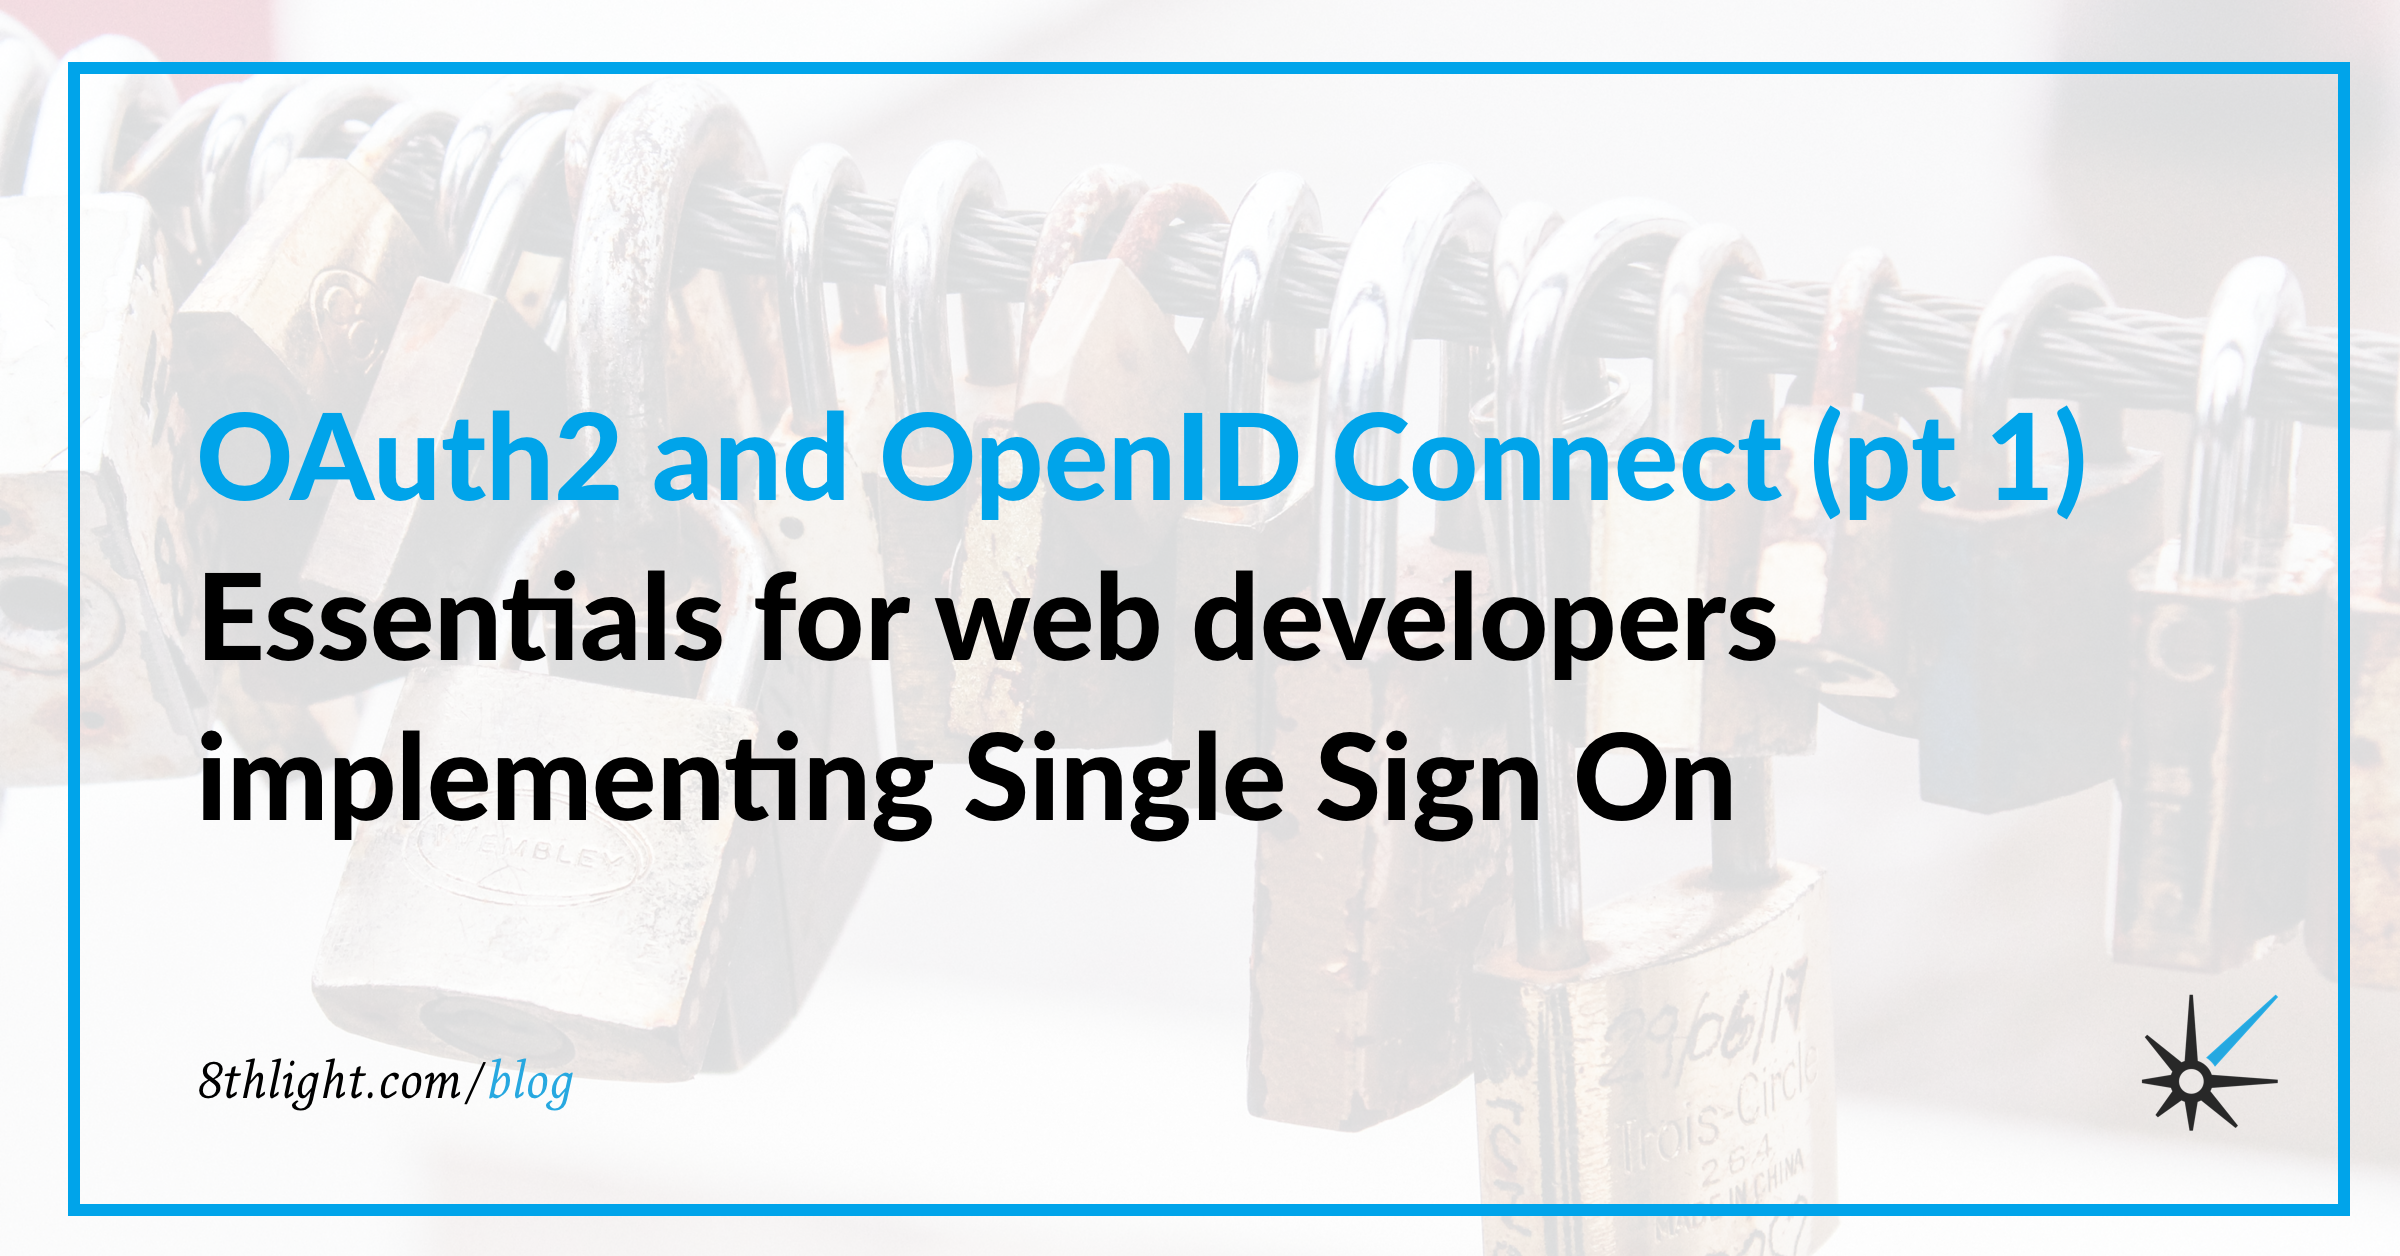 OAuth2 and OpenID Connect Essentials for Web Developers (Part 1) - RapidAPI